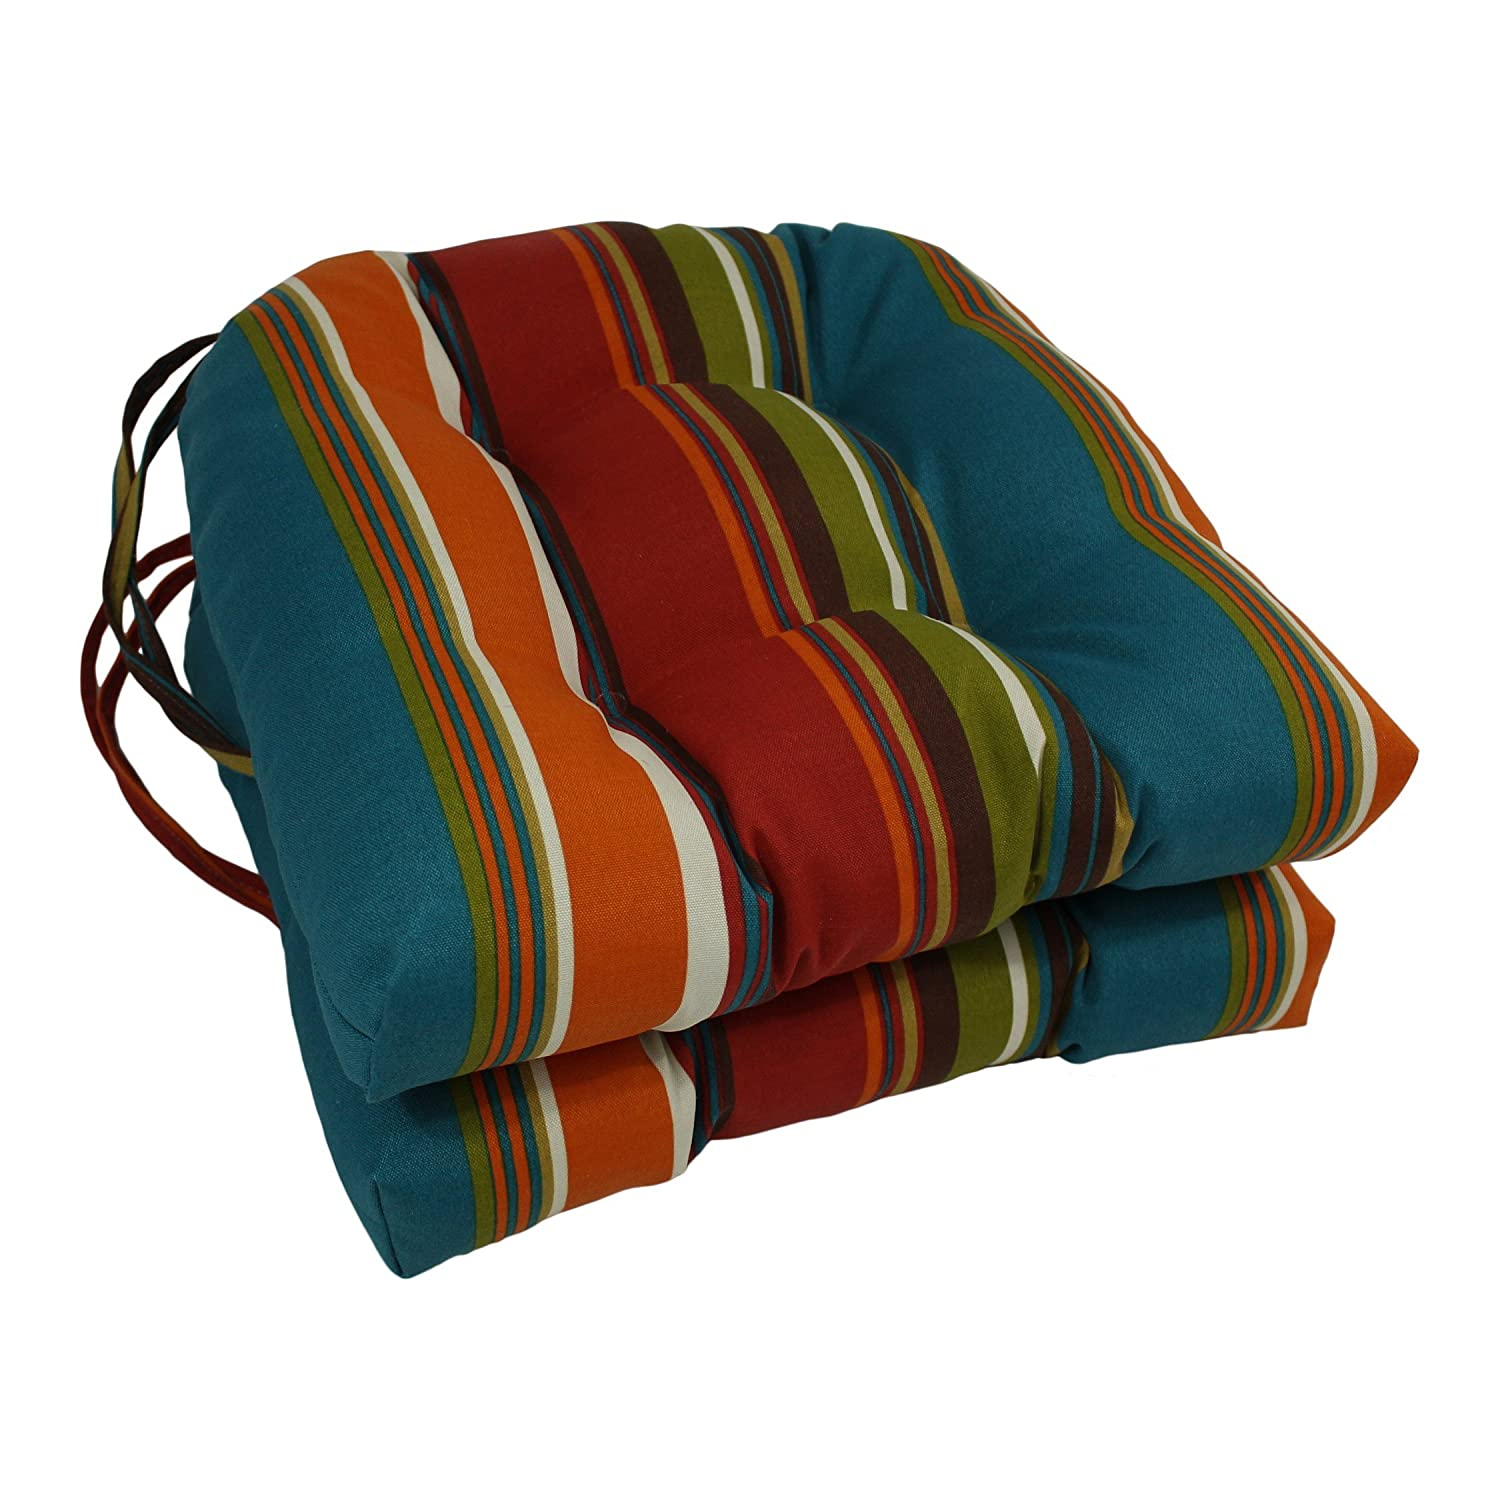 Blazing Needles Spun Polyester Patterned Outdoor U-Shaped Tufted Chair Cushions Set, Set of 2, 16 , Westport Teal